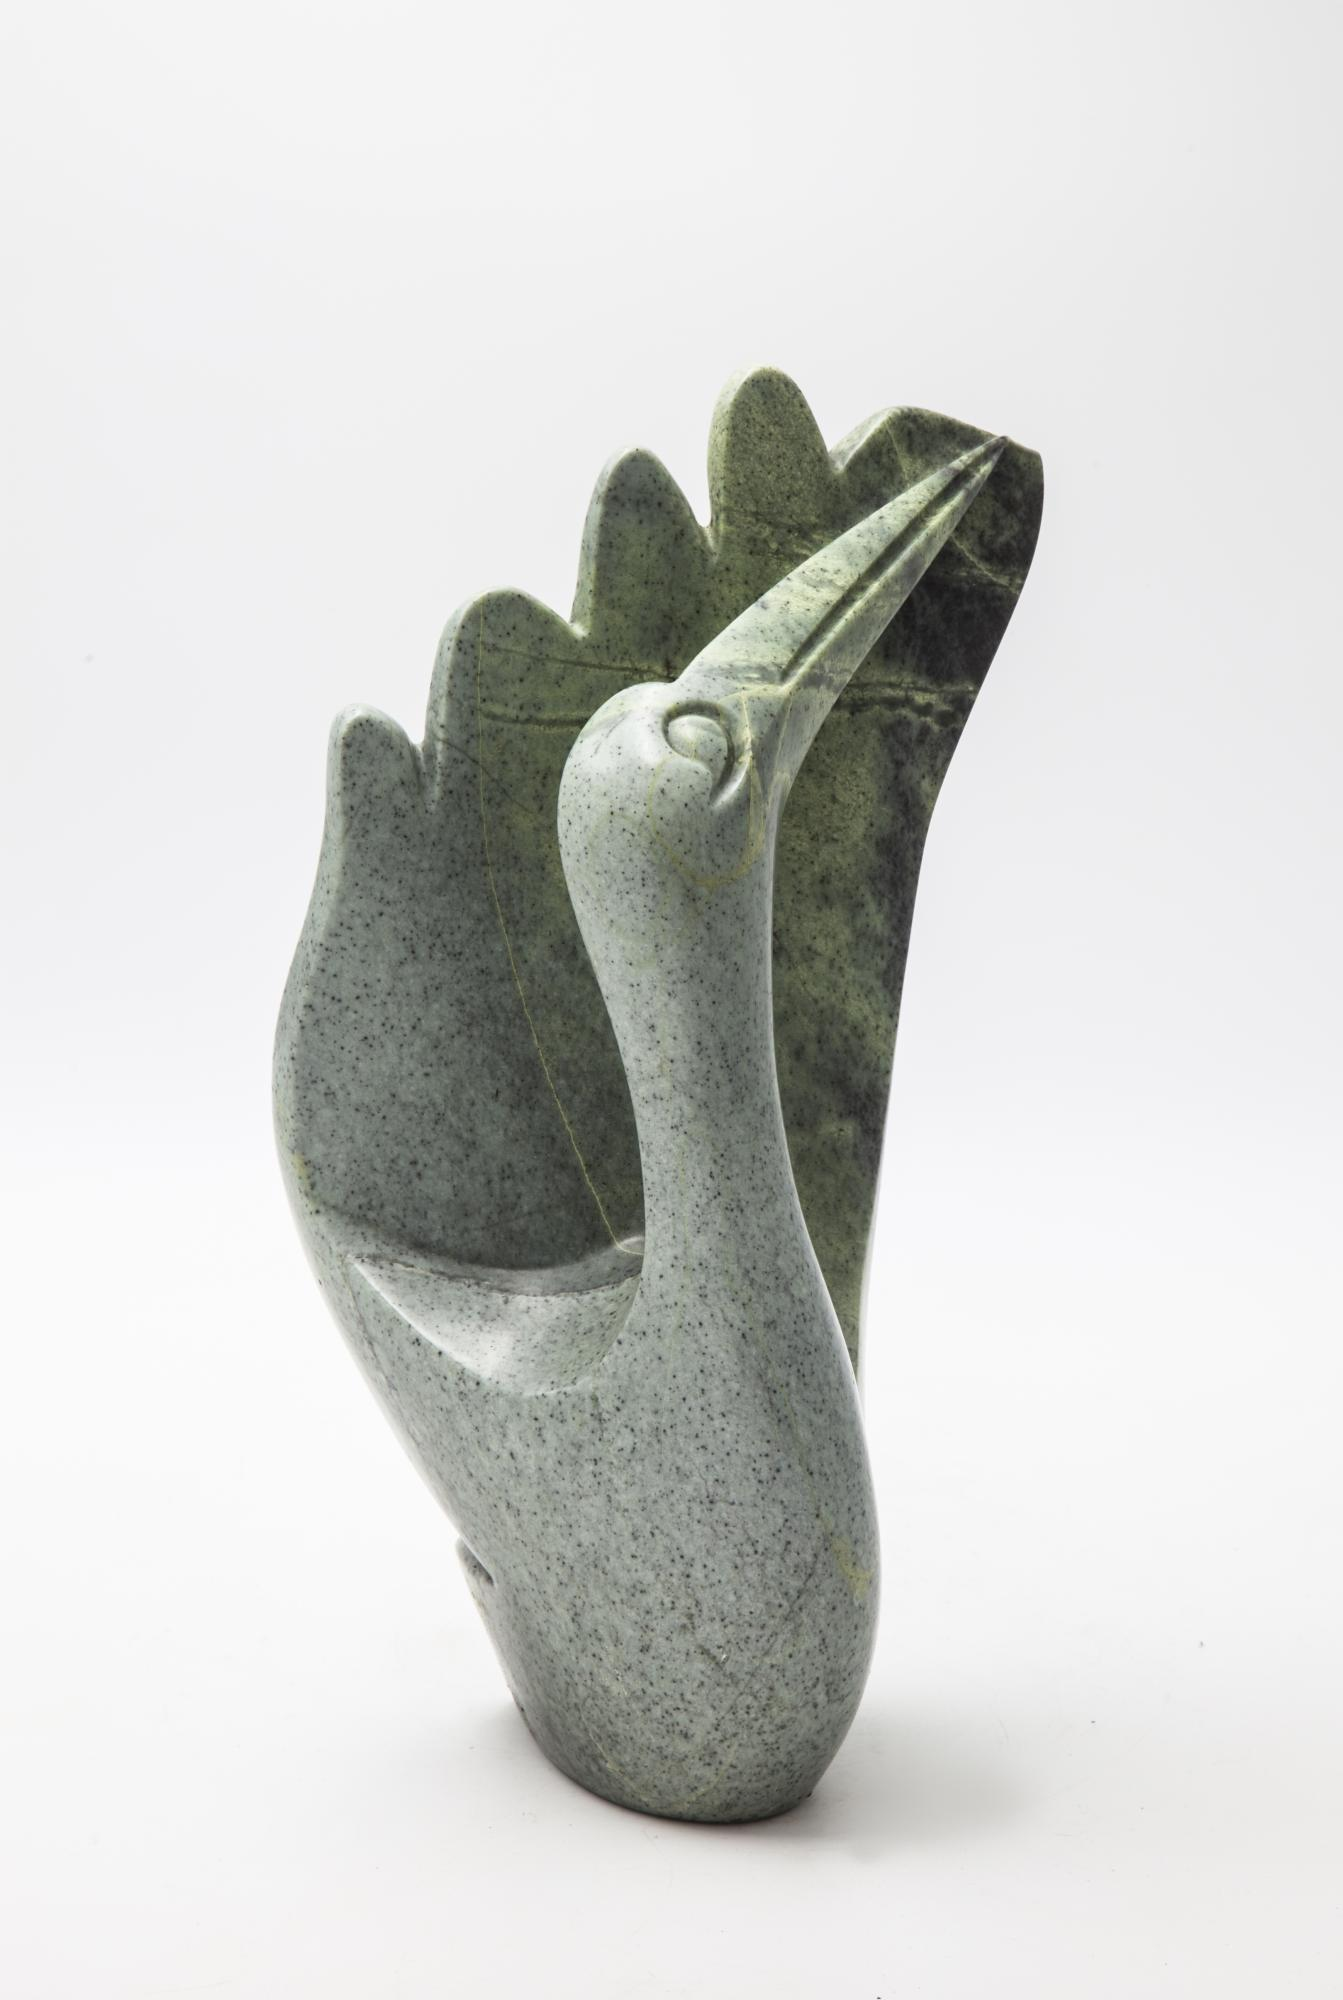 Lot 7 - Sculpture: Andaminyo Chihota, Scratching My Wings, Serpentine stone, 35.5cm high by 19.5cm wide by